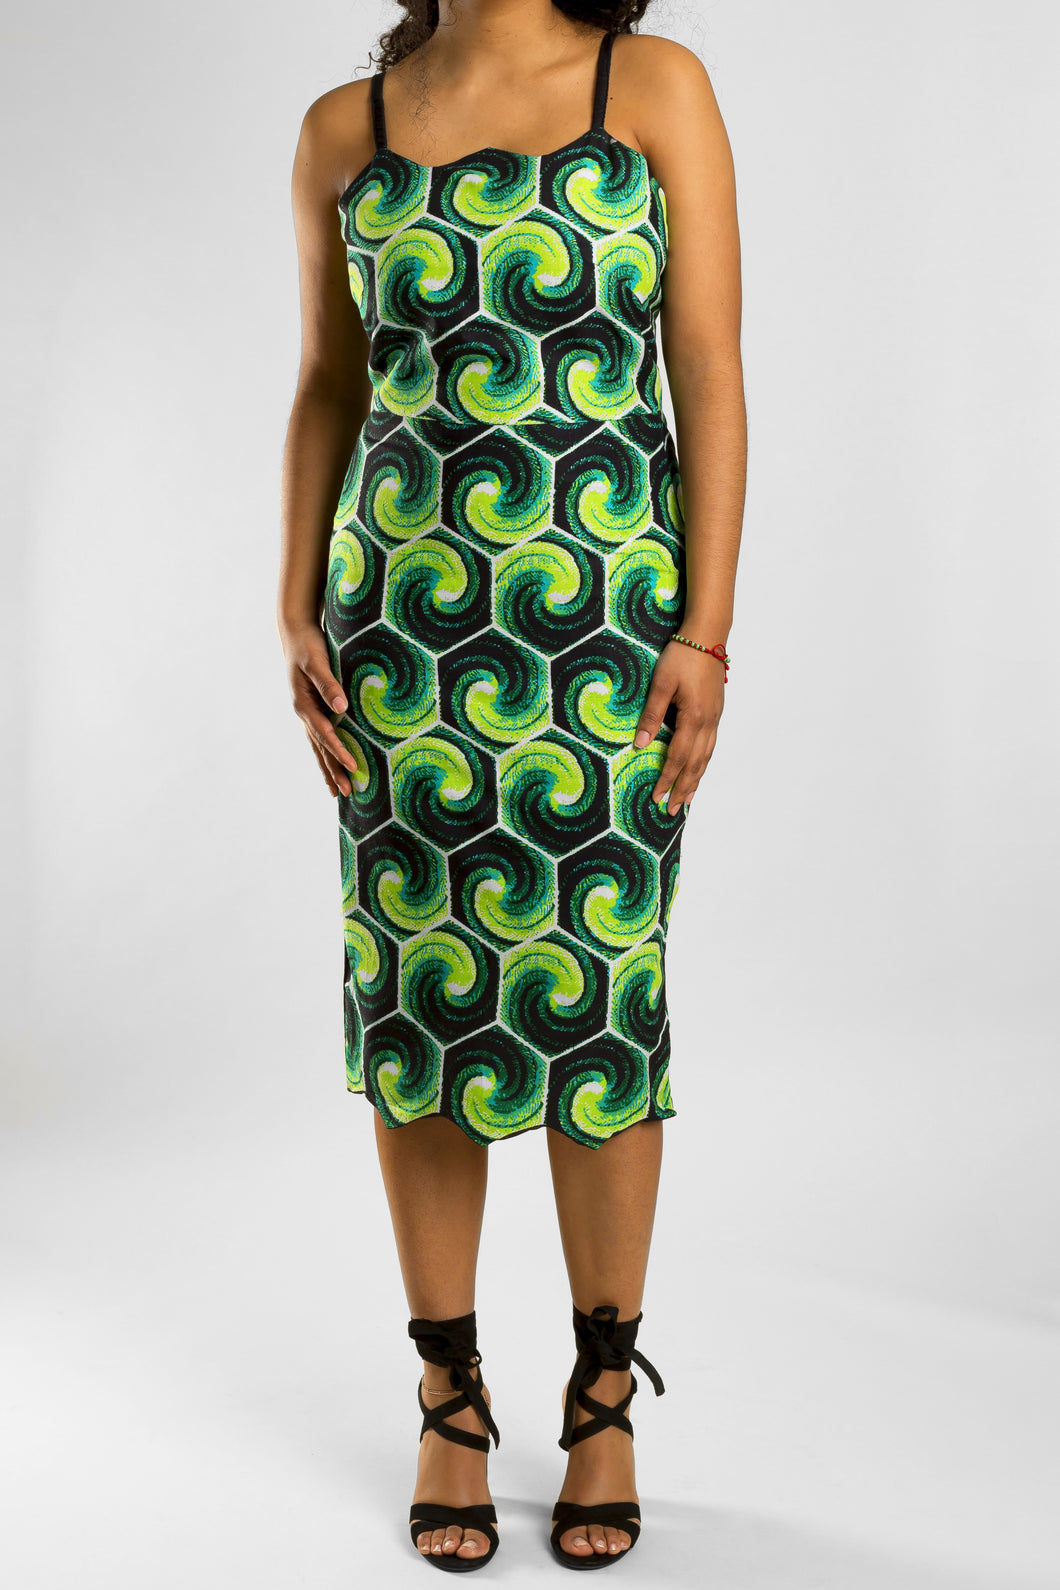 VV Patterned Pencil Dress in Nola Green